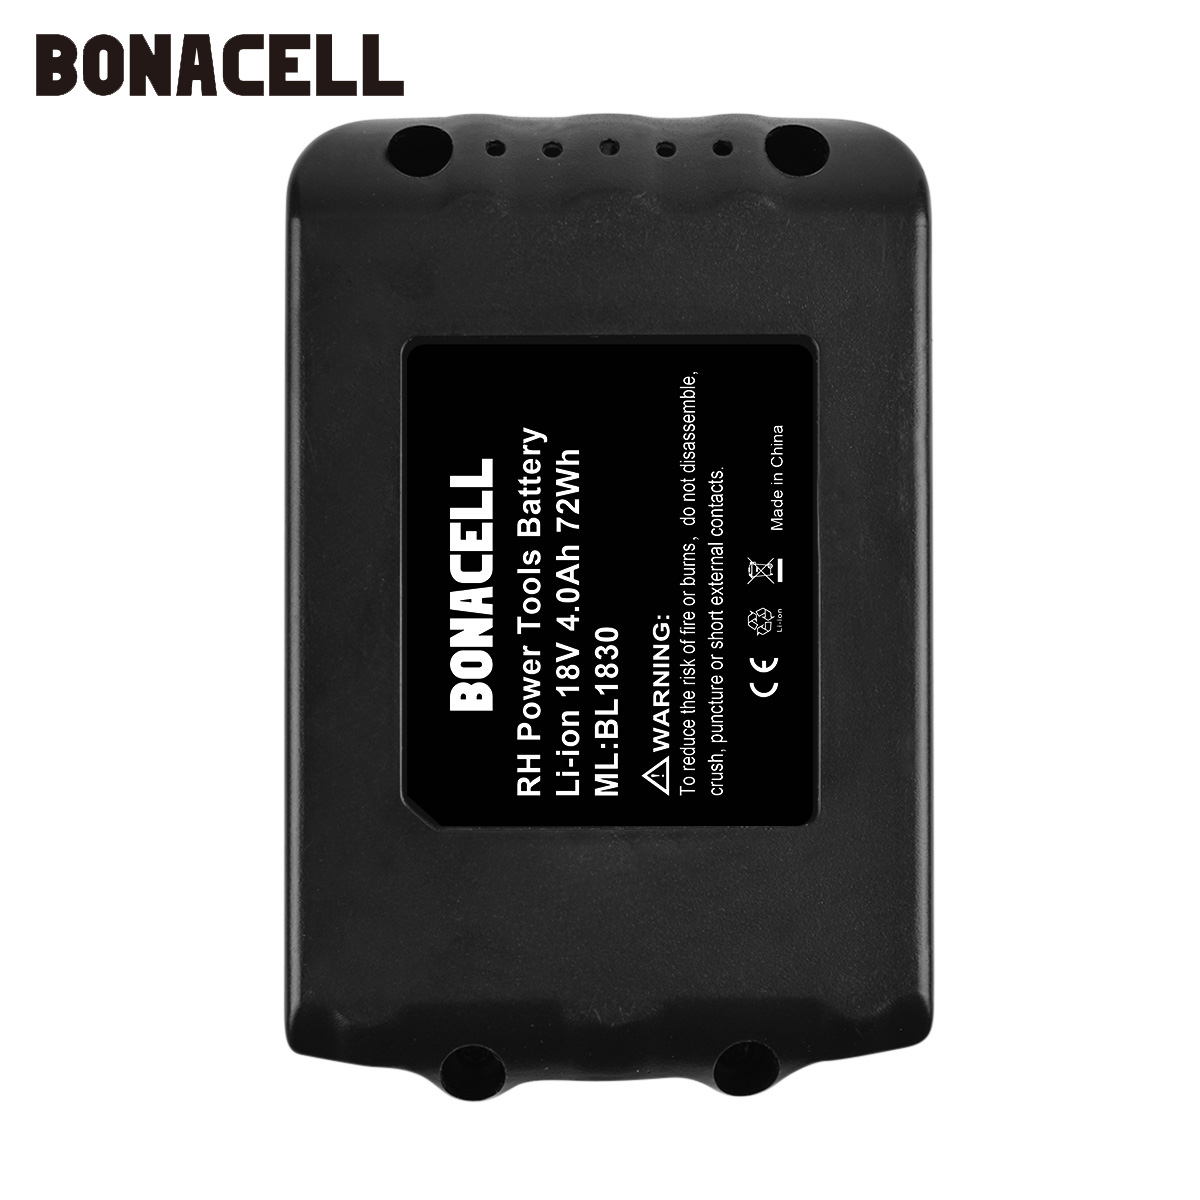 Image 5 - Bonacell 18V 4000mAh BL1830 Lithium Battery Pack Replacement for Makita Drill LXT400 194205 3 194309 1 BL1815 BL1840 BL1850 L30-in Replacement Batteries from Consumer Electronics